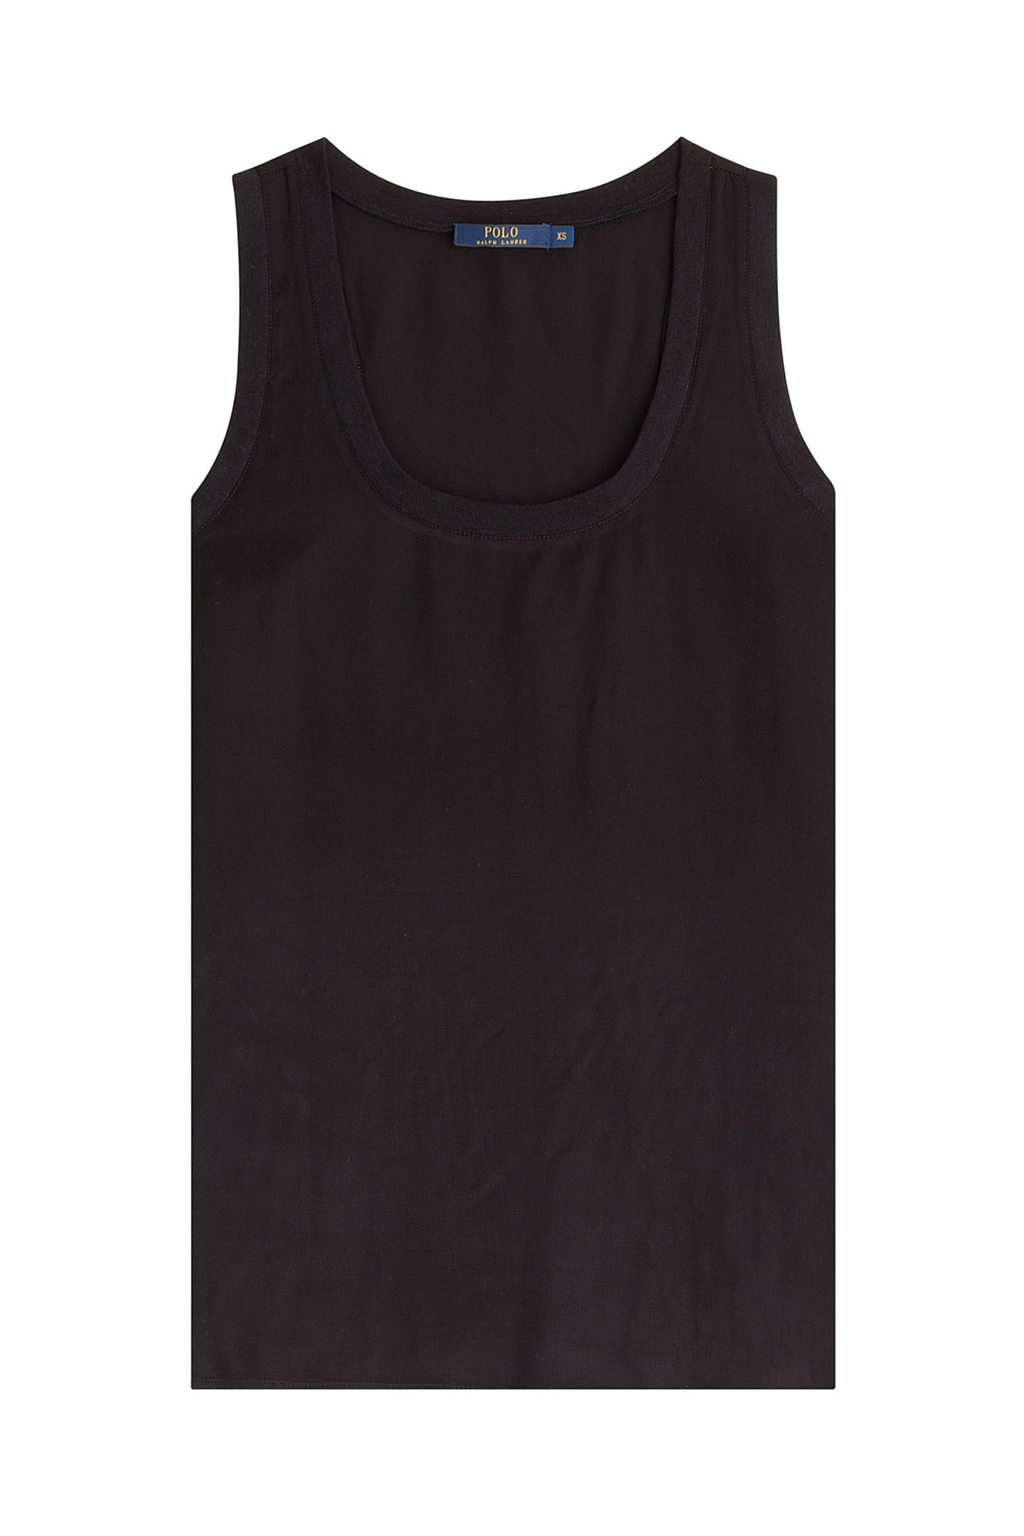 Tank Top Black - neckline: round neck; pattern: plain; sleeve style: sleeveless; style: vest top; predominant colour: black; occasions: casual; length: standard; fibres: viscose/rayon - 100%; fit: body skimming; sleeve length: sleeveless; pattern type: fabric; texture group: jersey - stretchy/drapey; season: s/s 2016